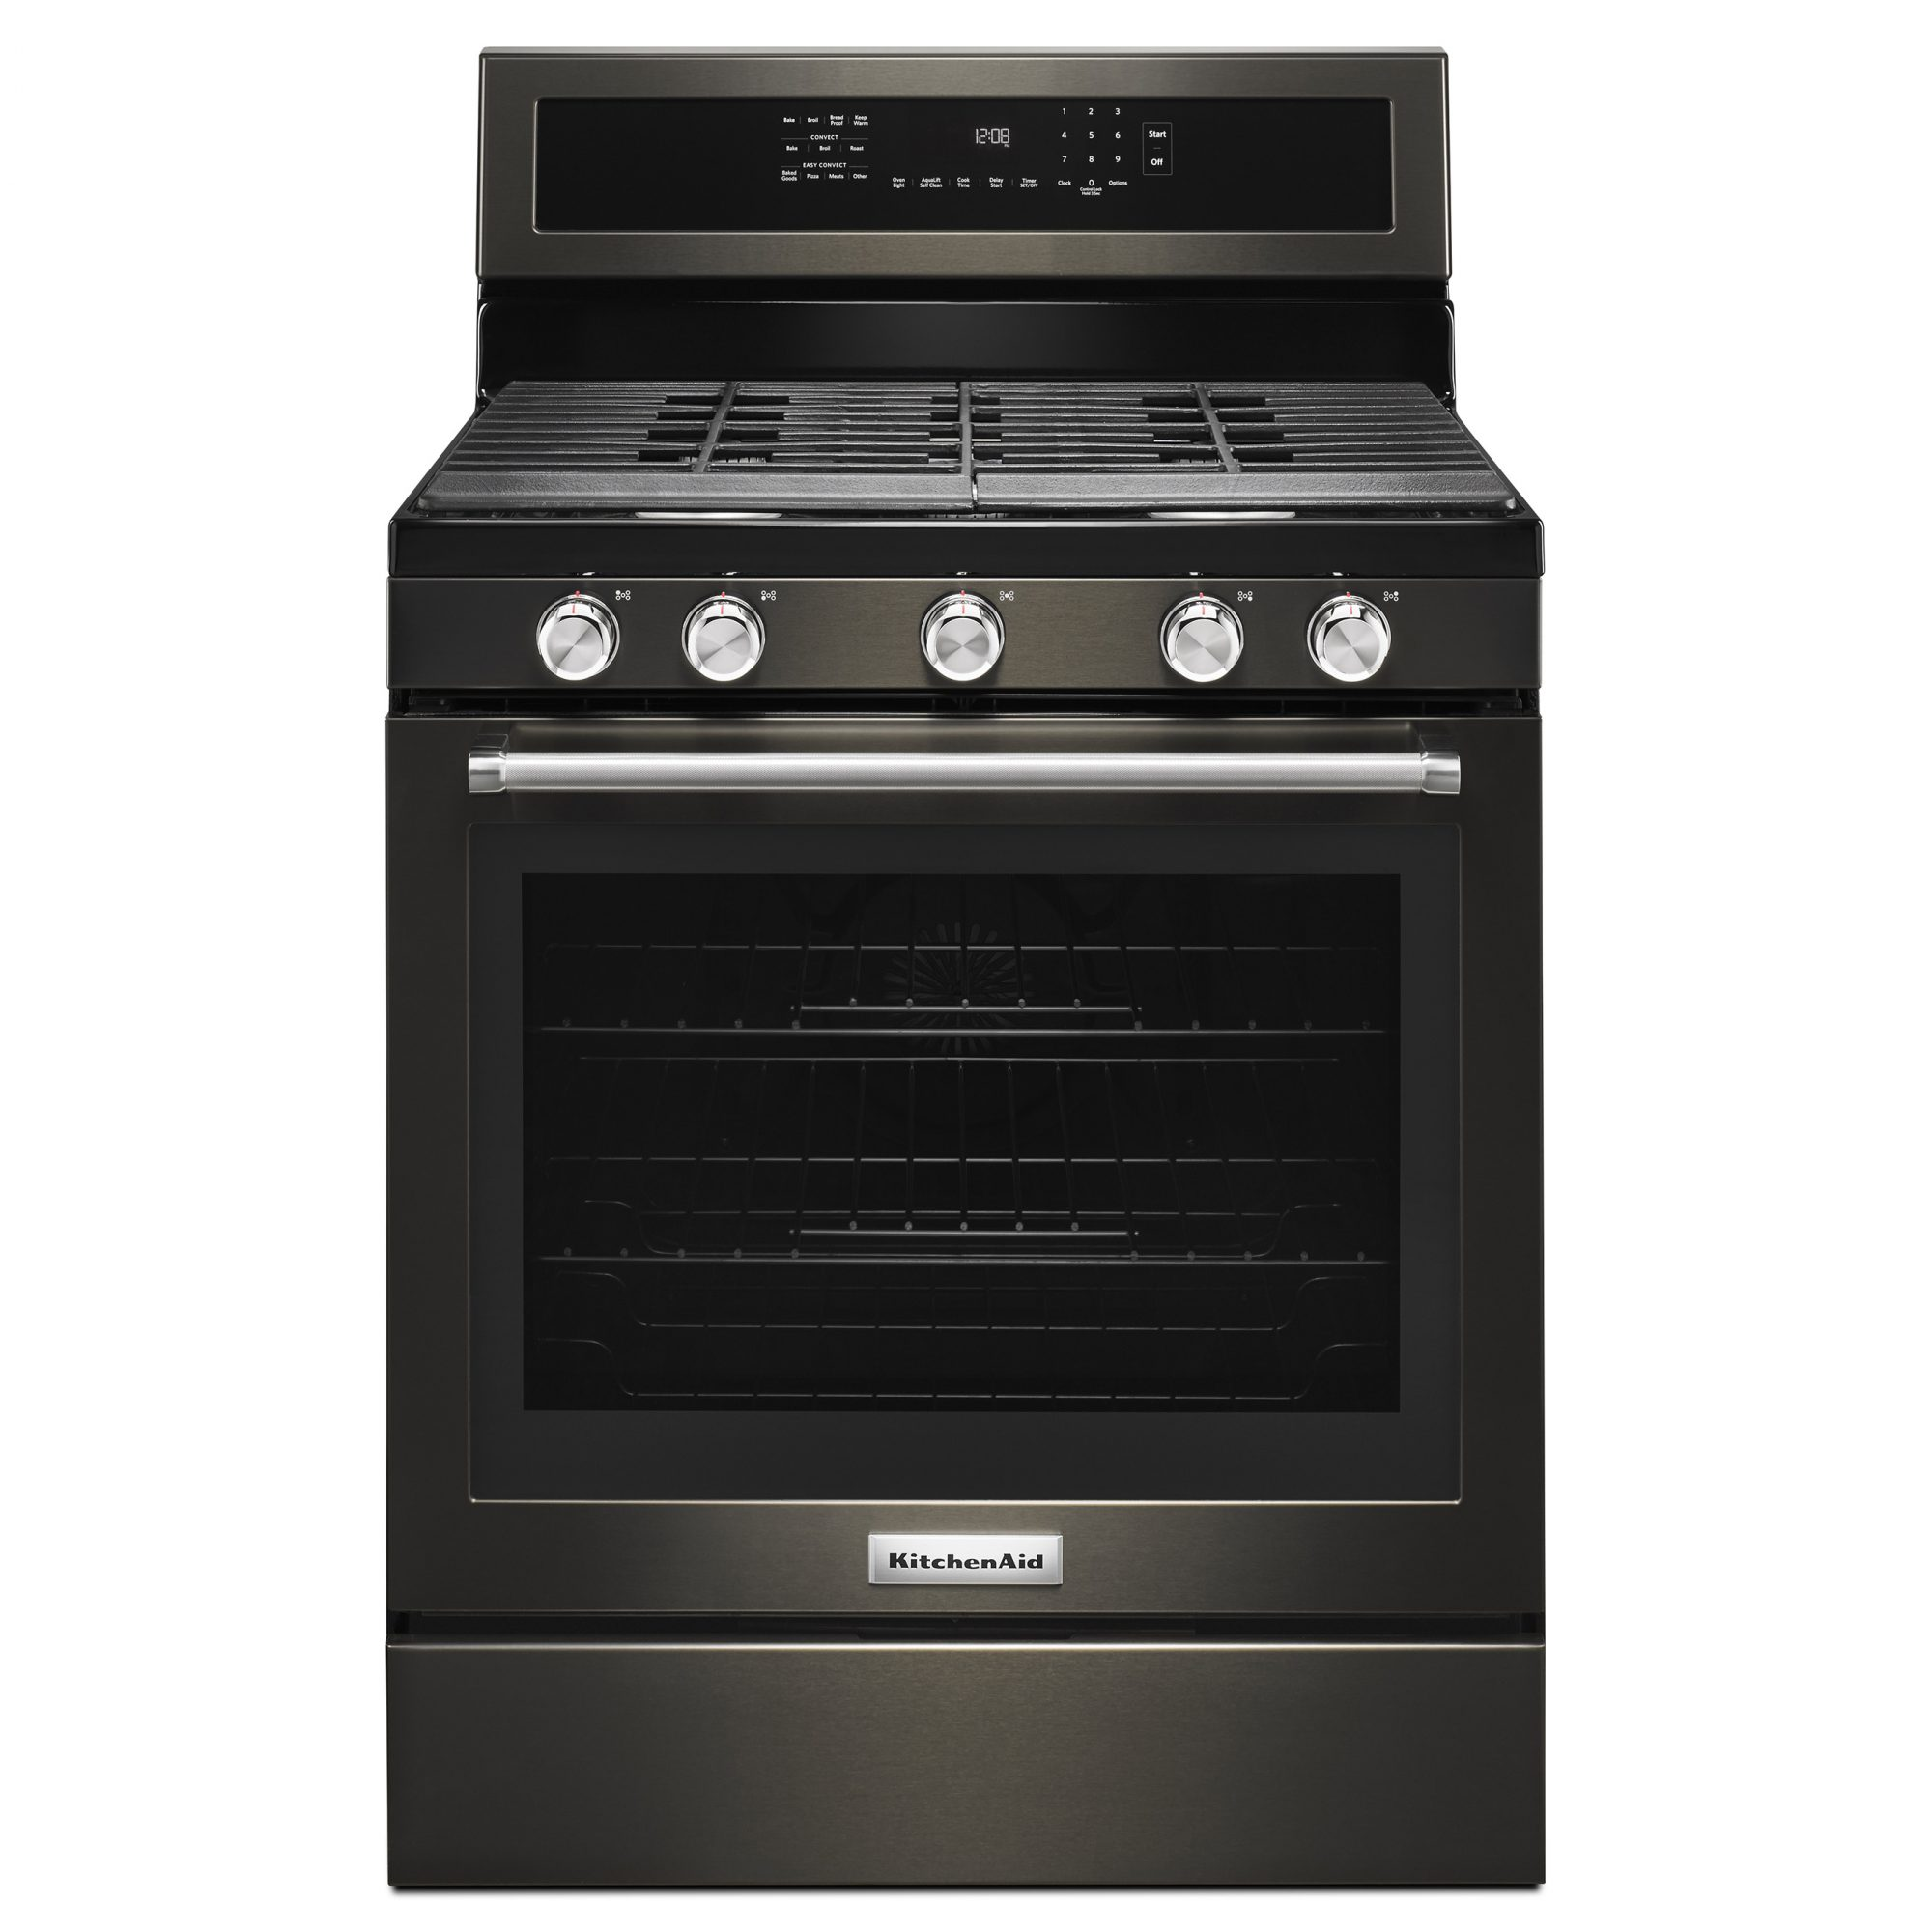 Kitchenaid's matte black convection range stove